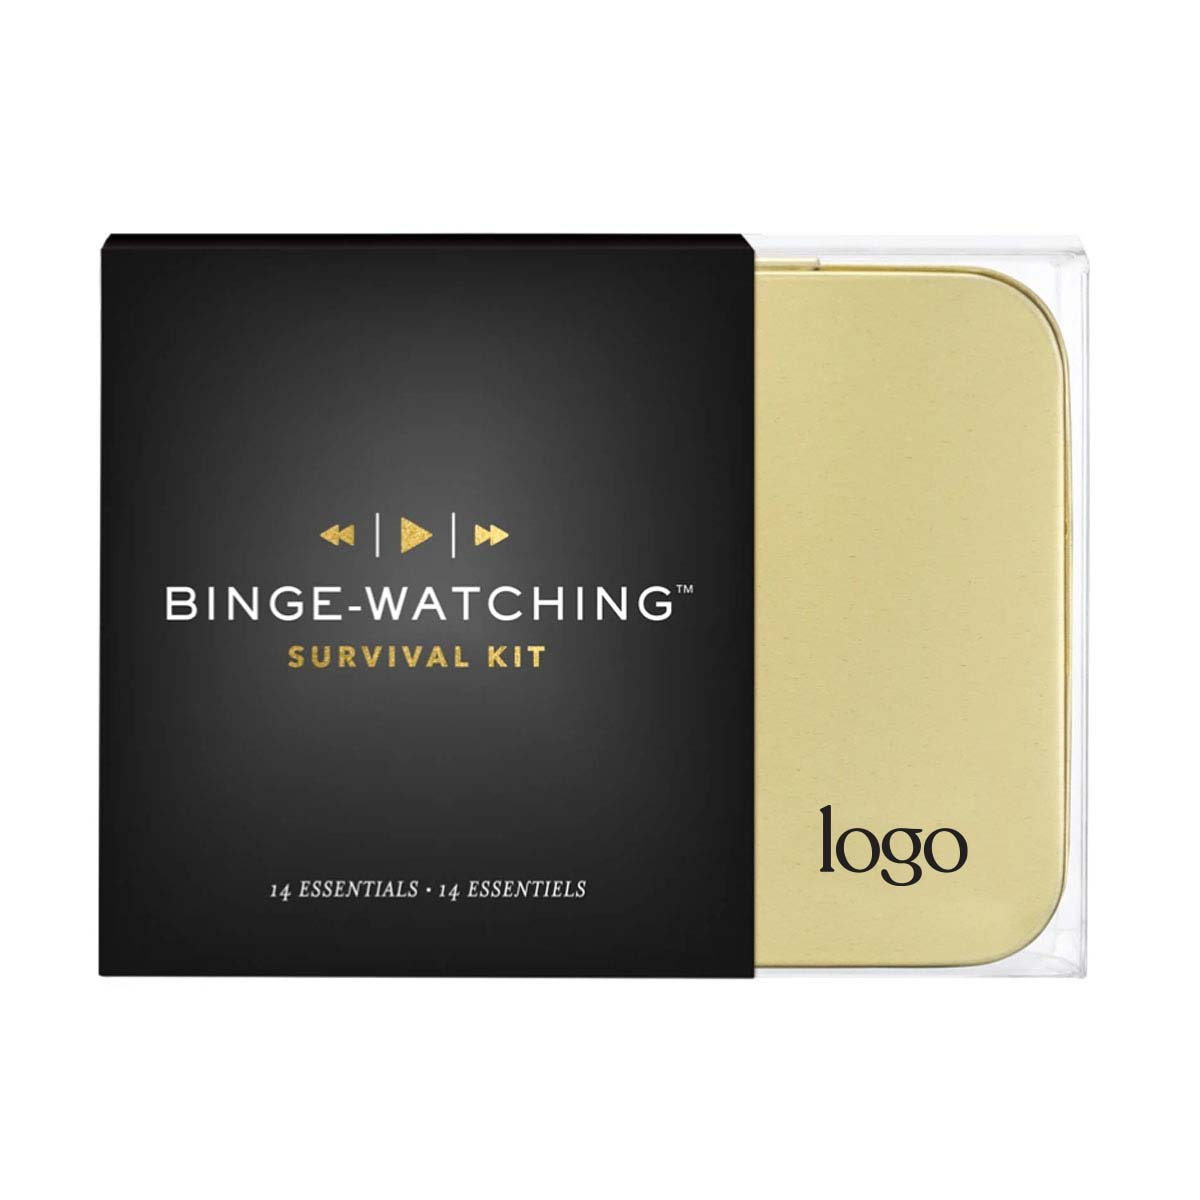 302302 binge watching kit one color one location imprint